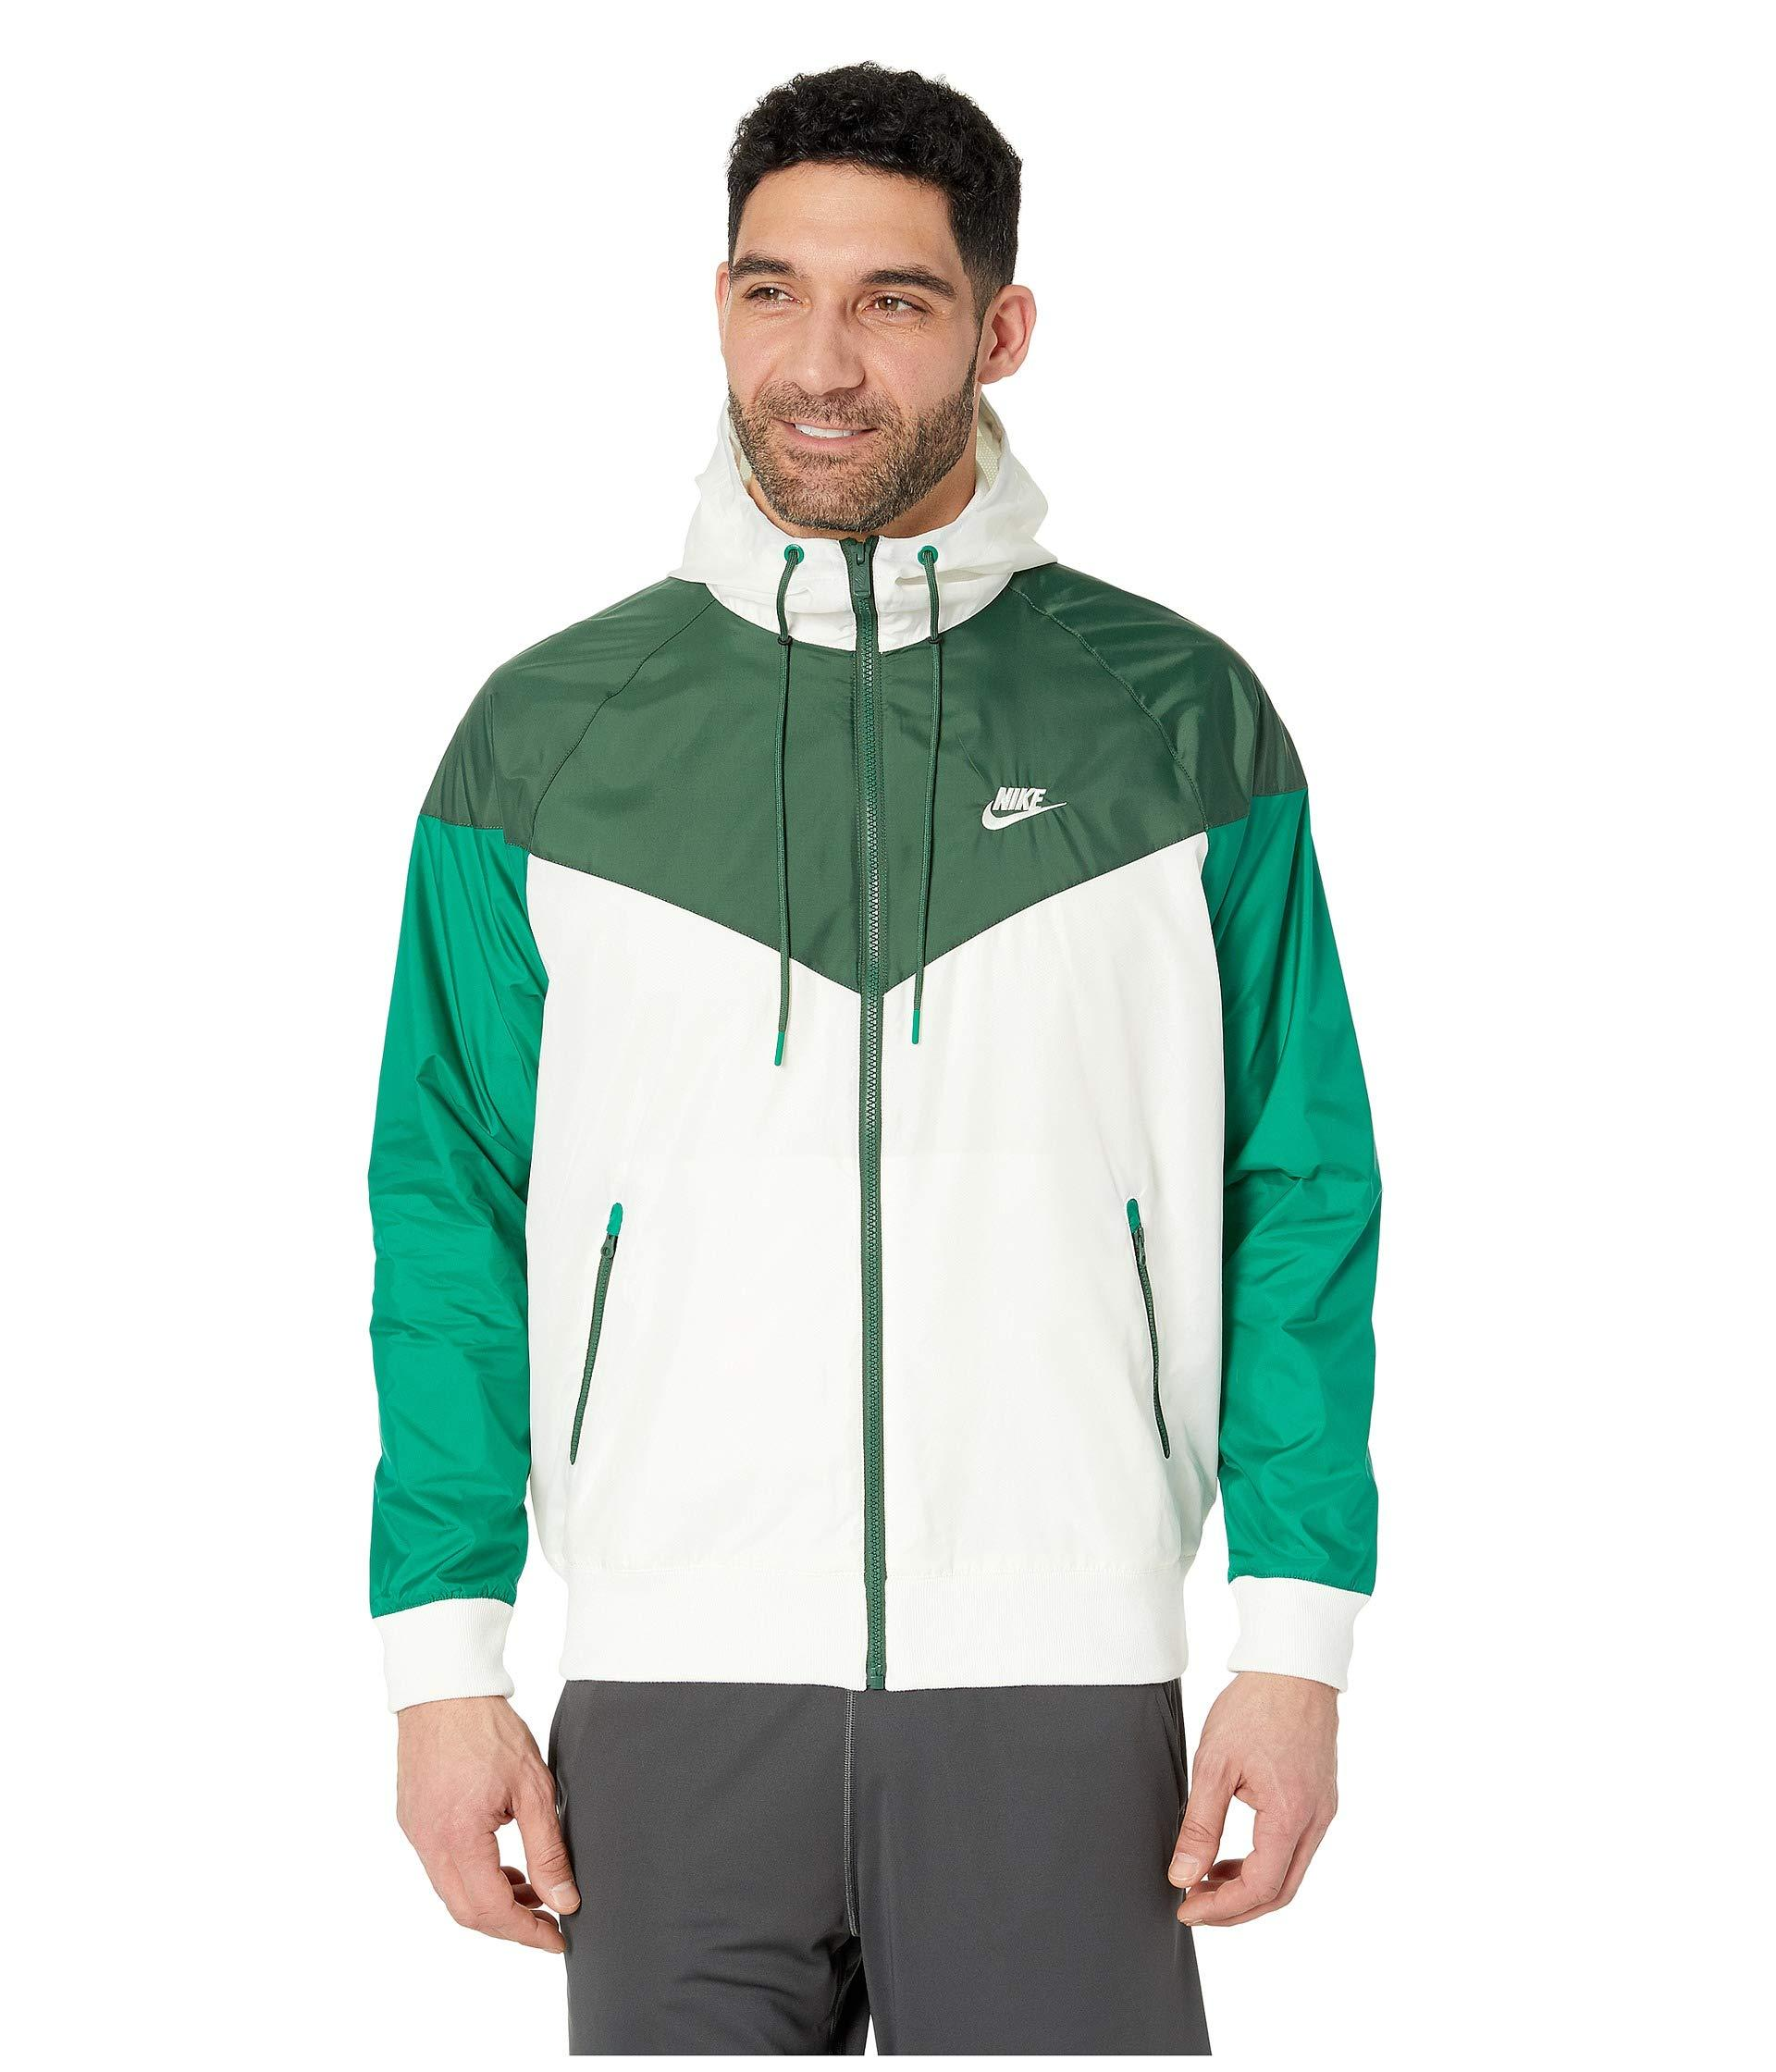 c306199b496b Lyst - Nike Windrunner Jacket in Green for Men - Save 35%